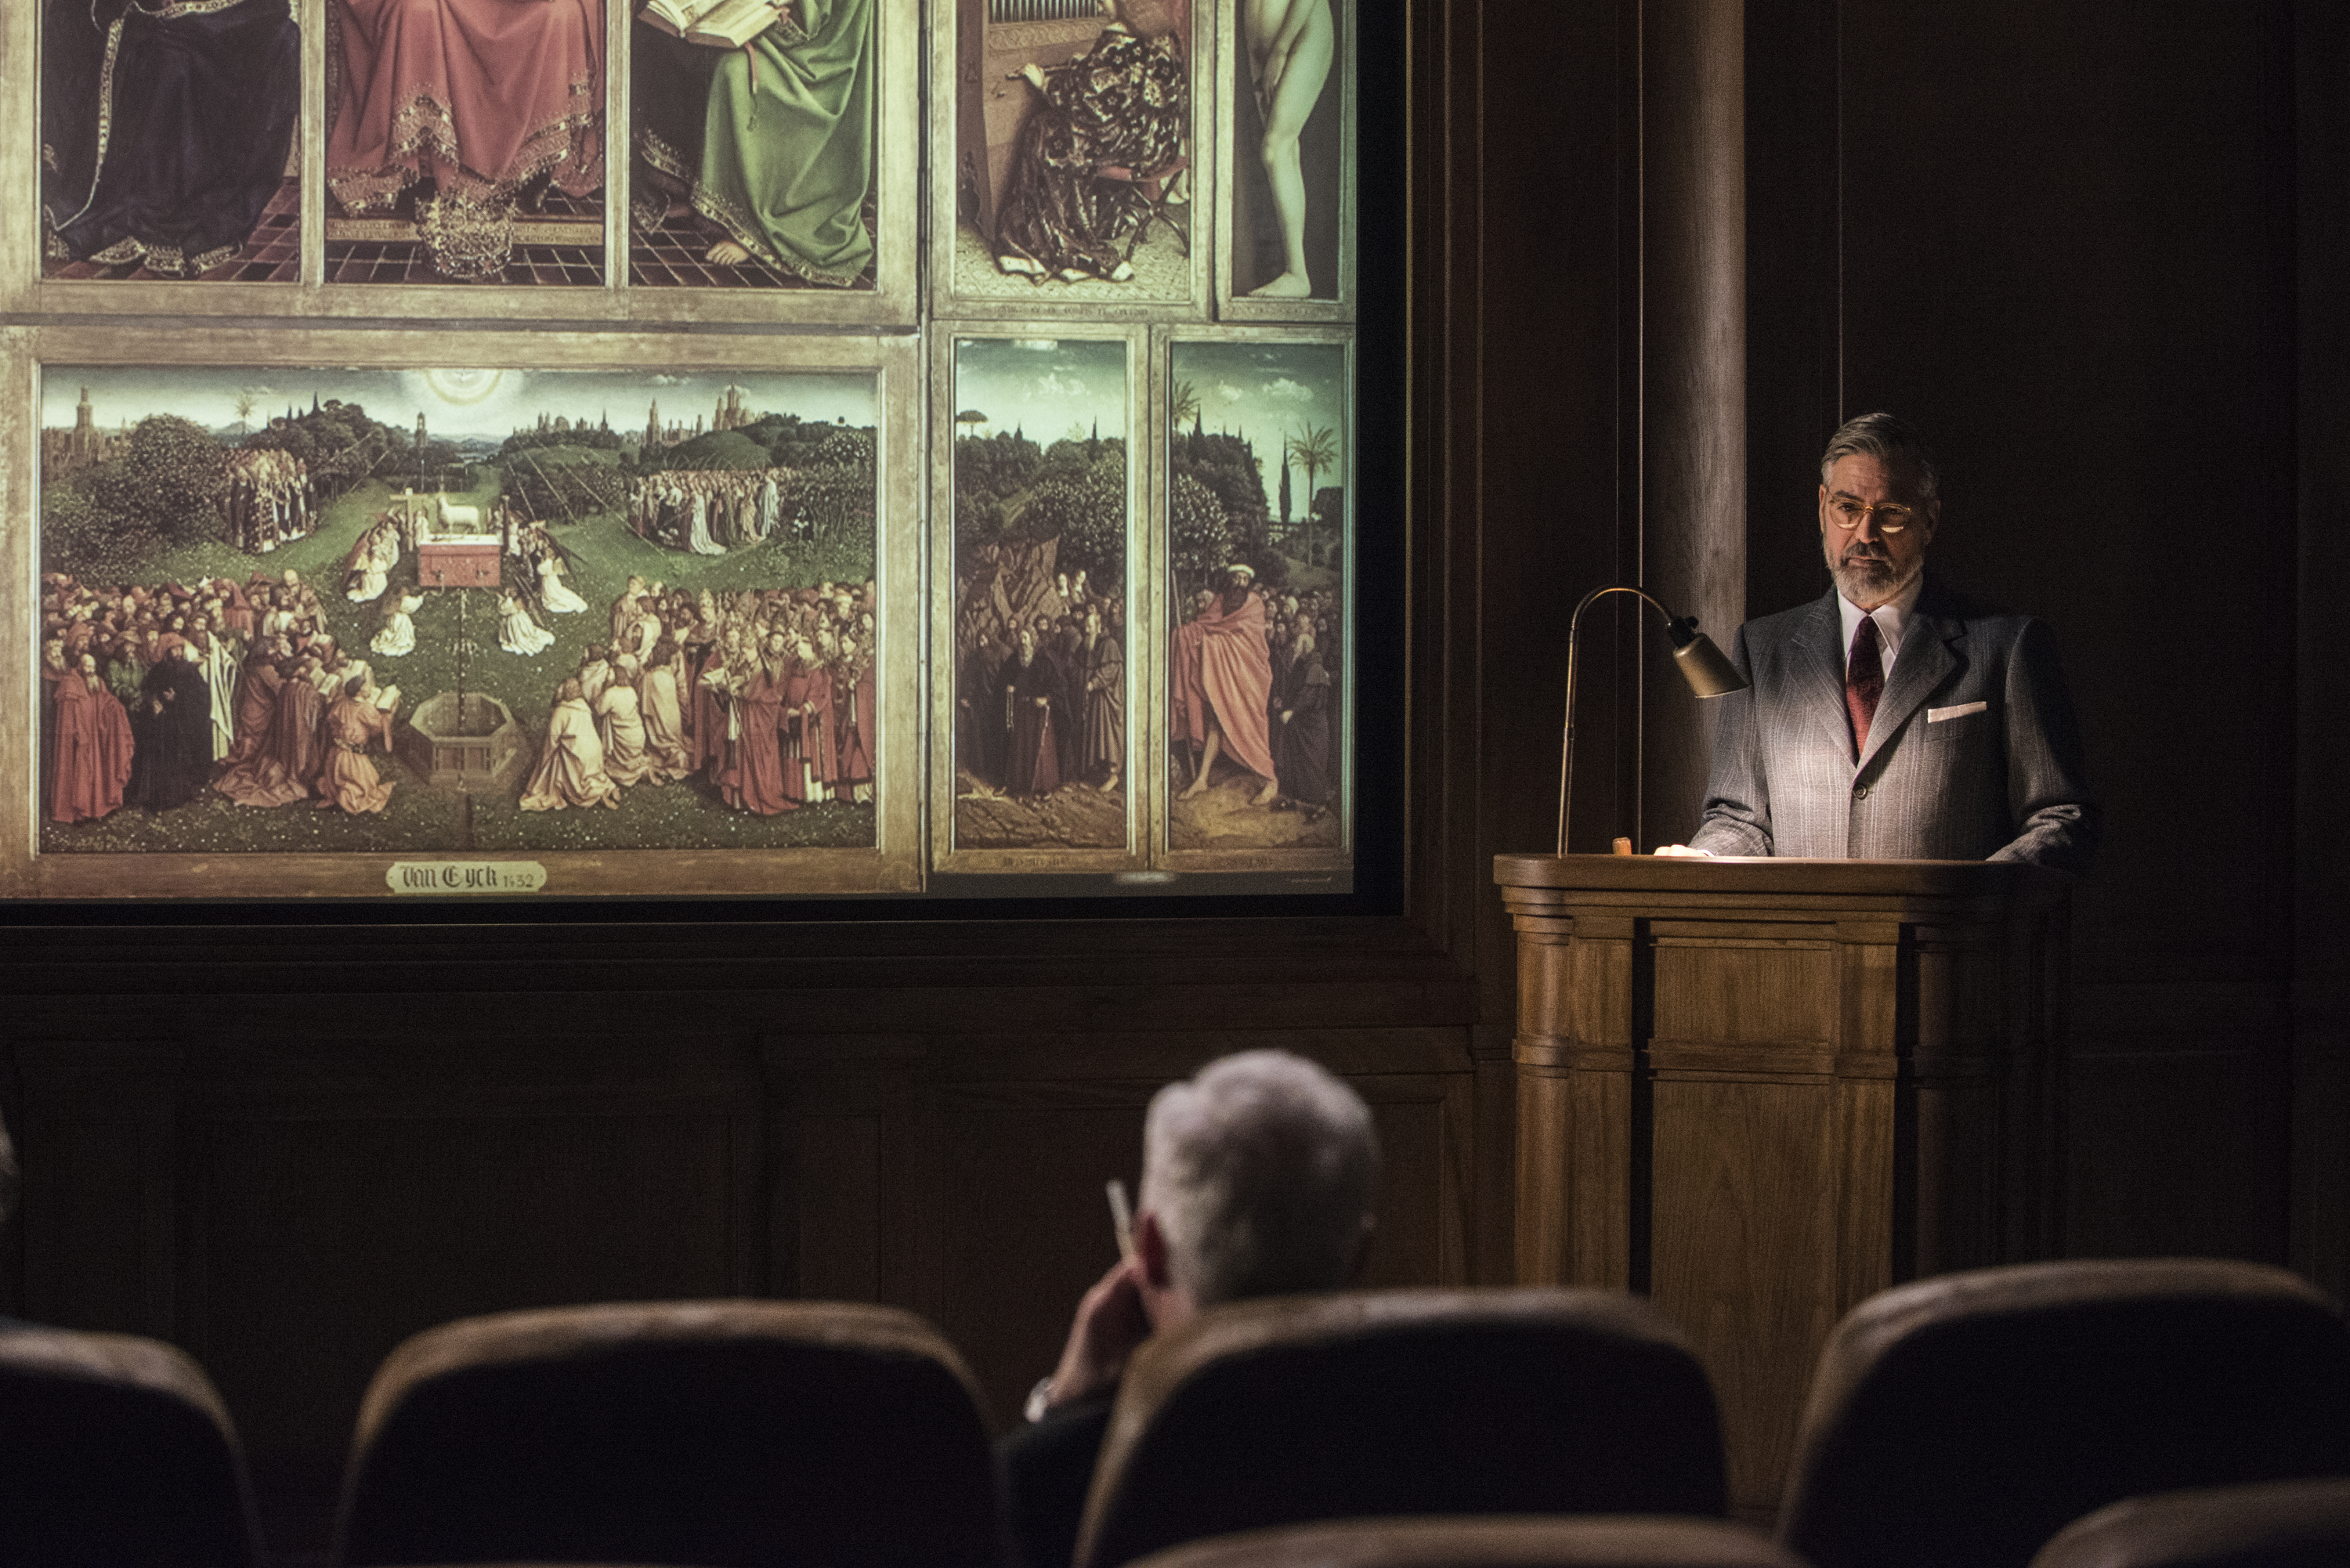 George Clooney shows a slide of the Ghent Altarpiece to the president in The Monuments Men.